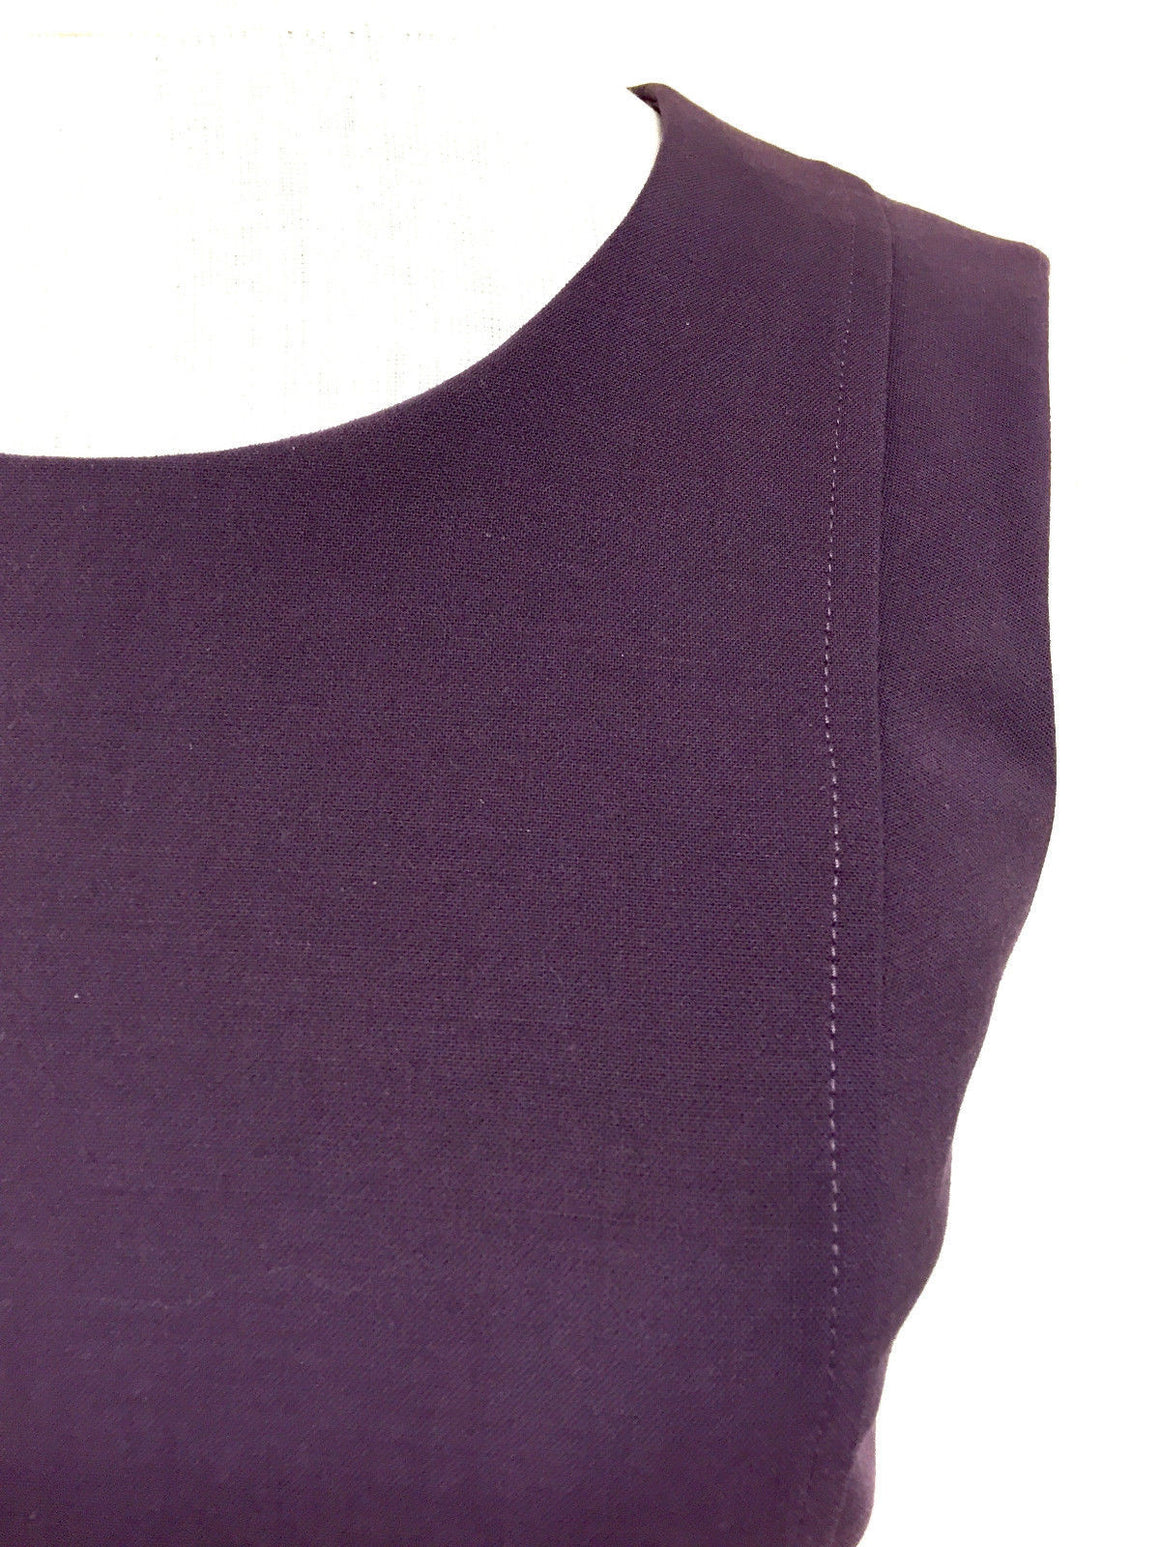 bisbiz.com VERSACE  Plum-Purple Wool-Blend Sleeveless Fitted Dress Size: IT 38/US4 - Bis Luxury Resale